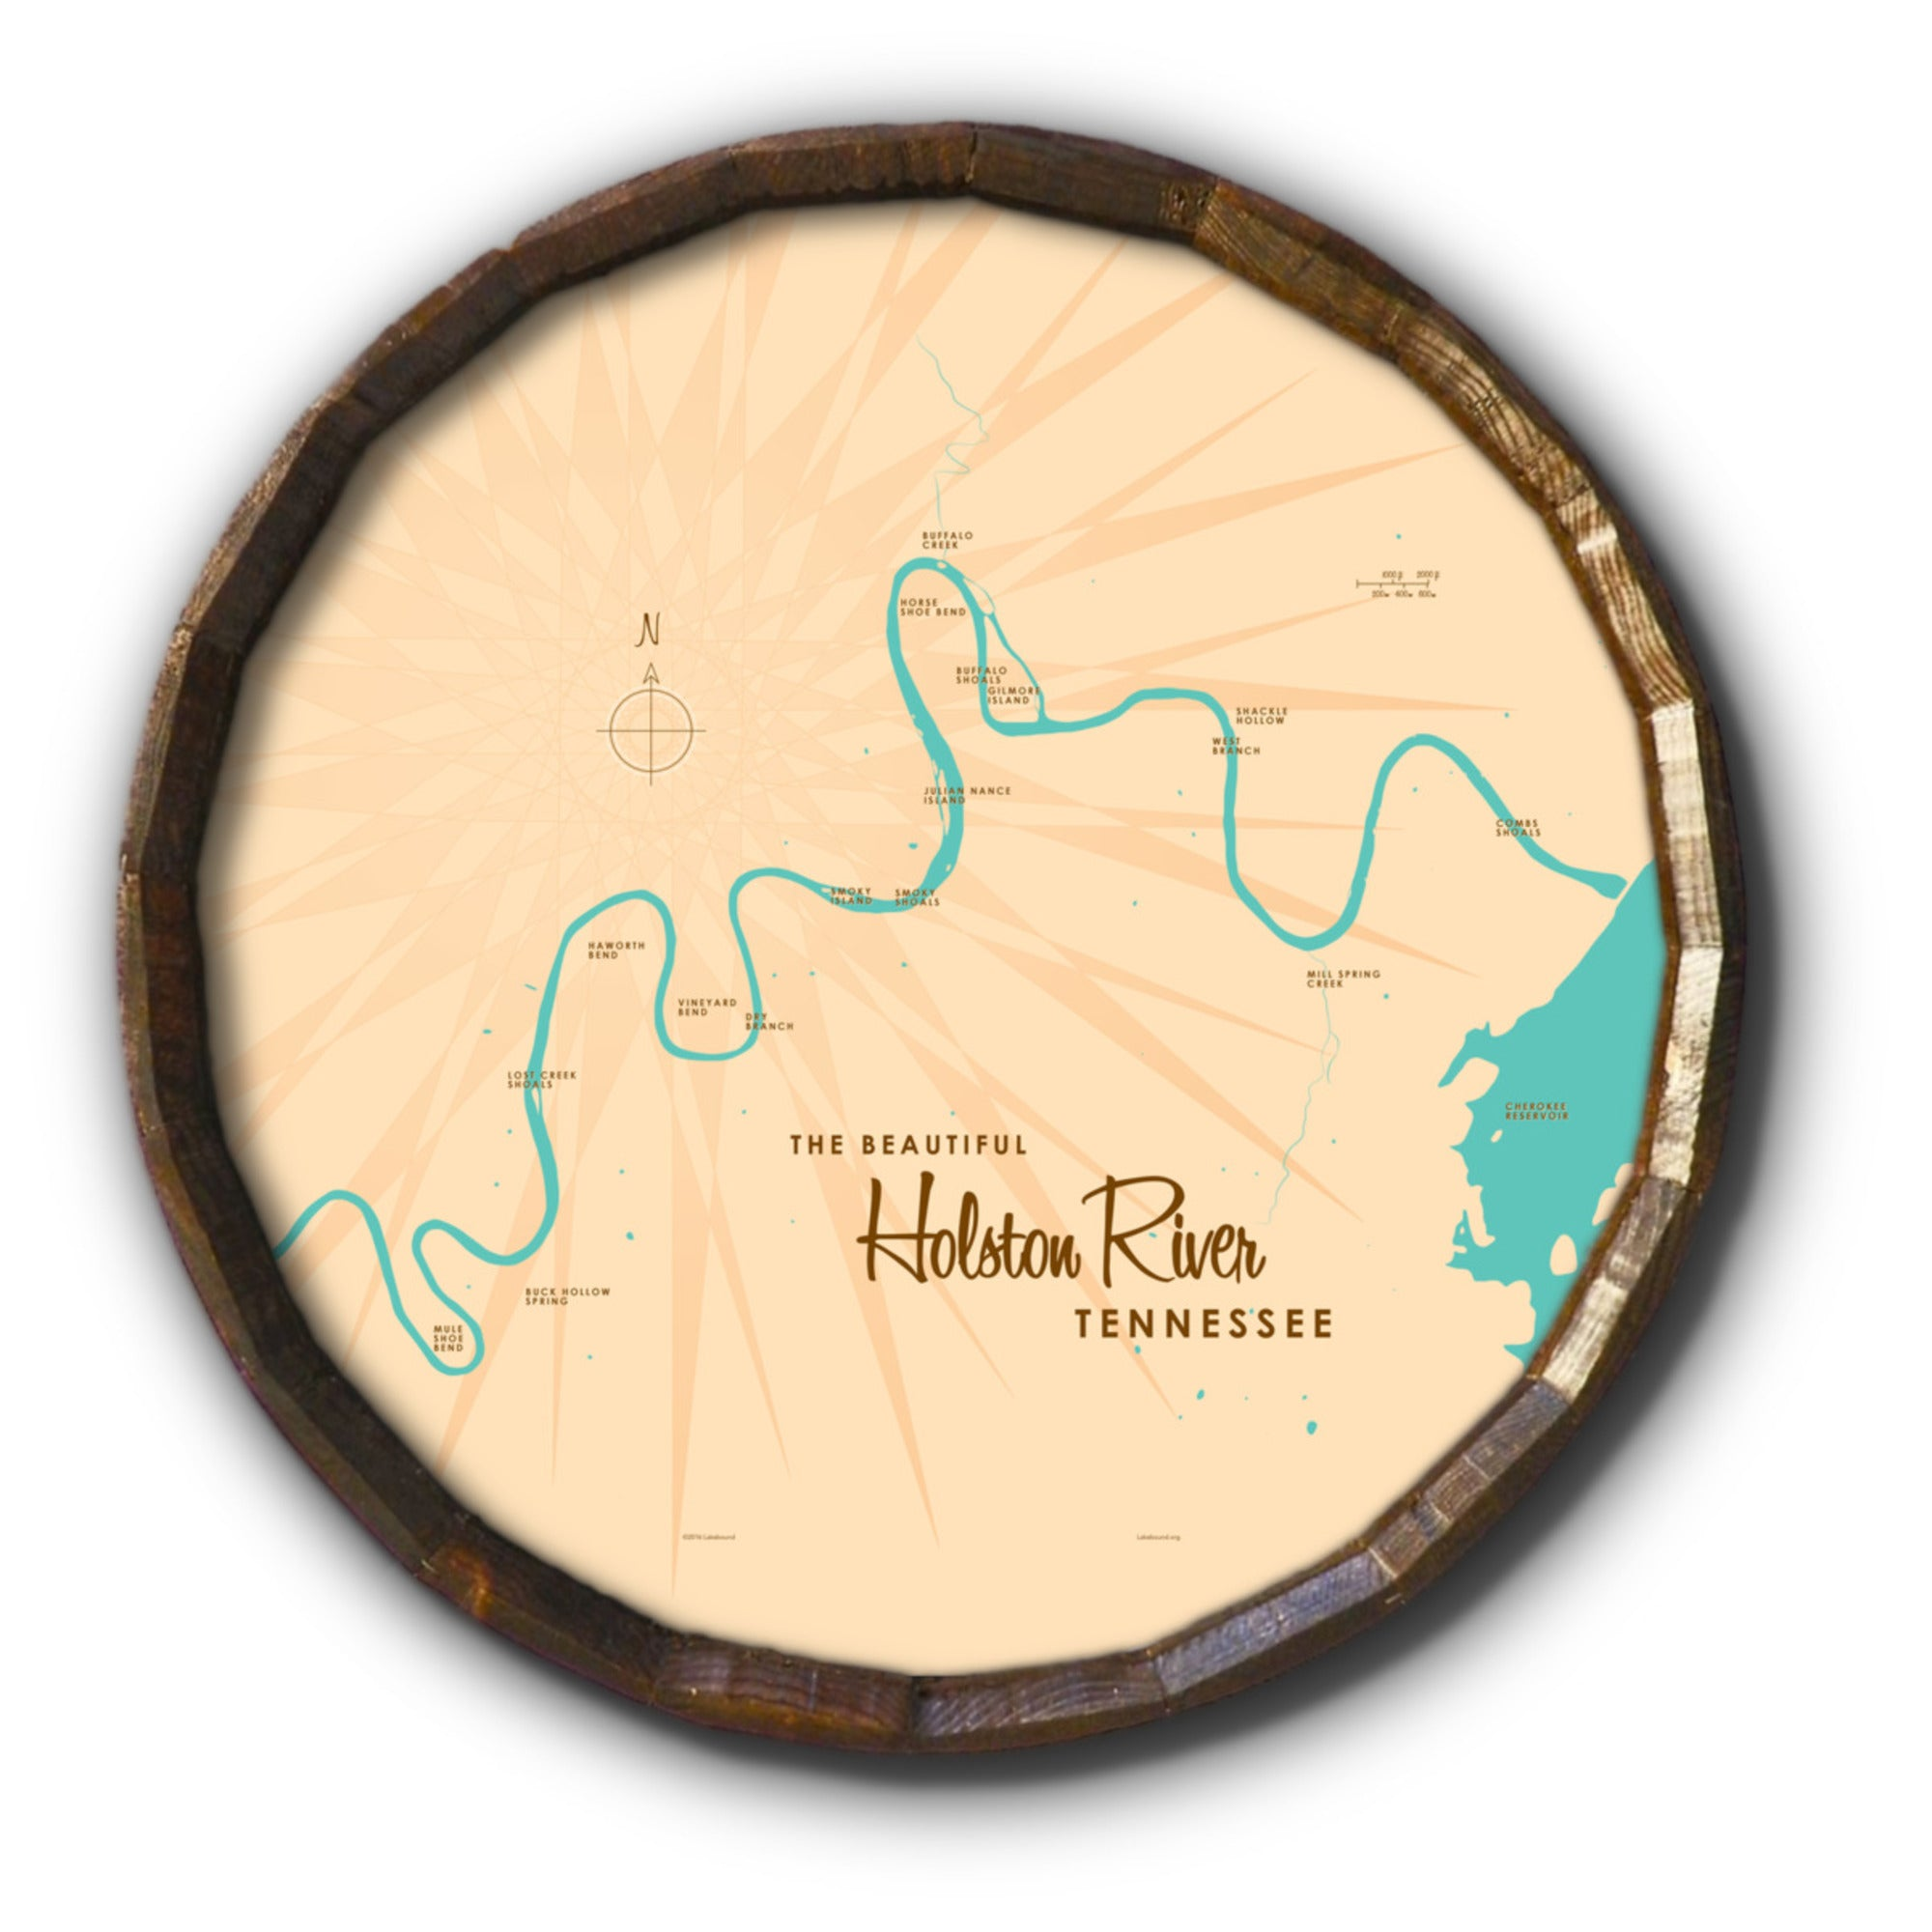 Holston River Tennessee, Barrel End Map Art